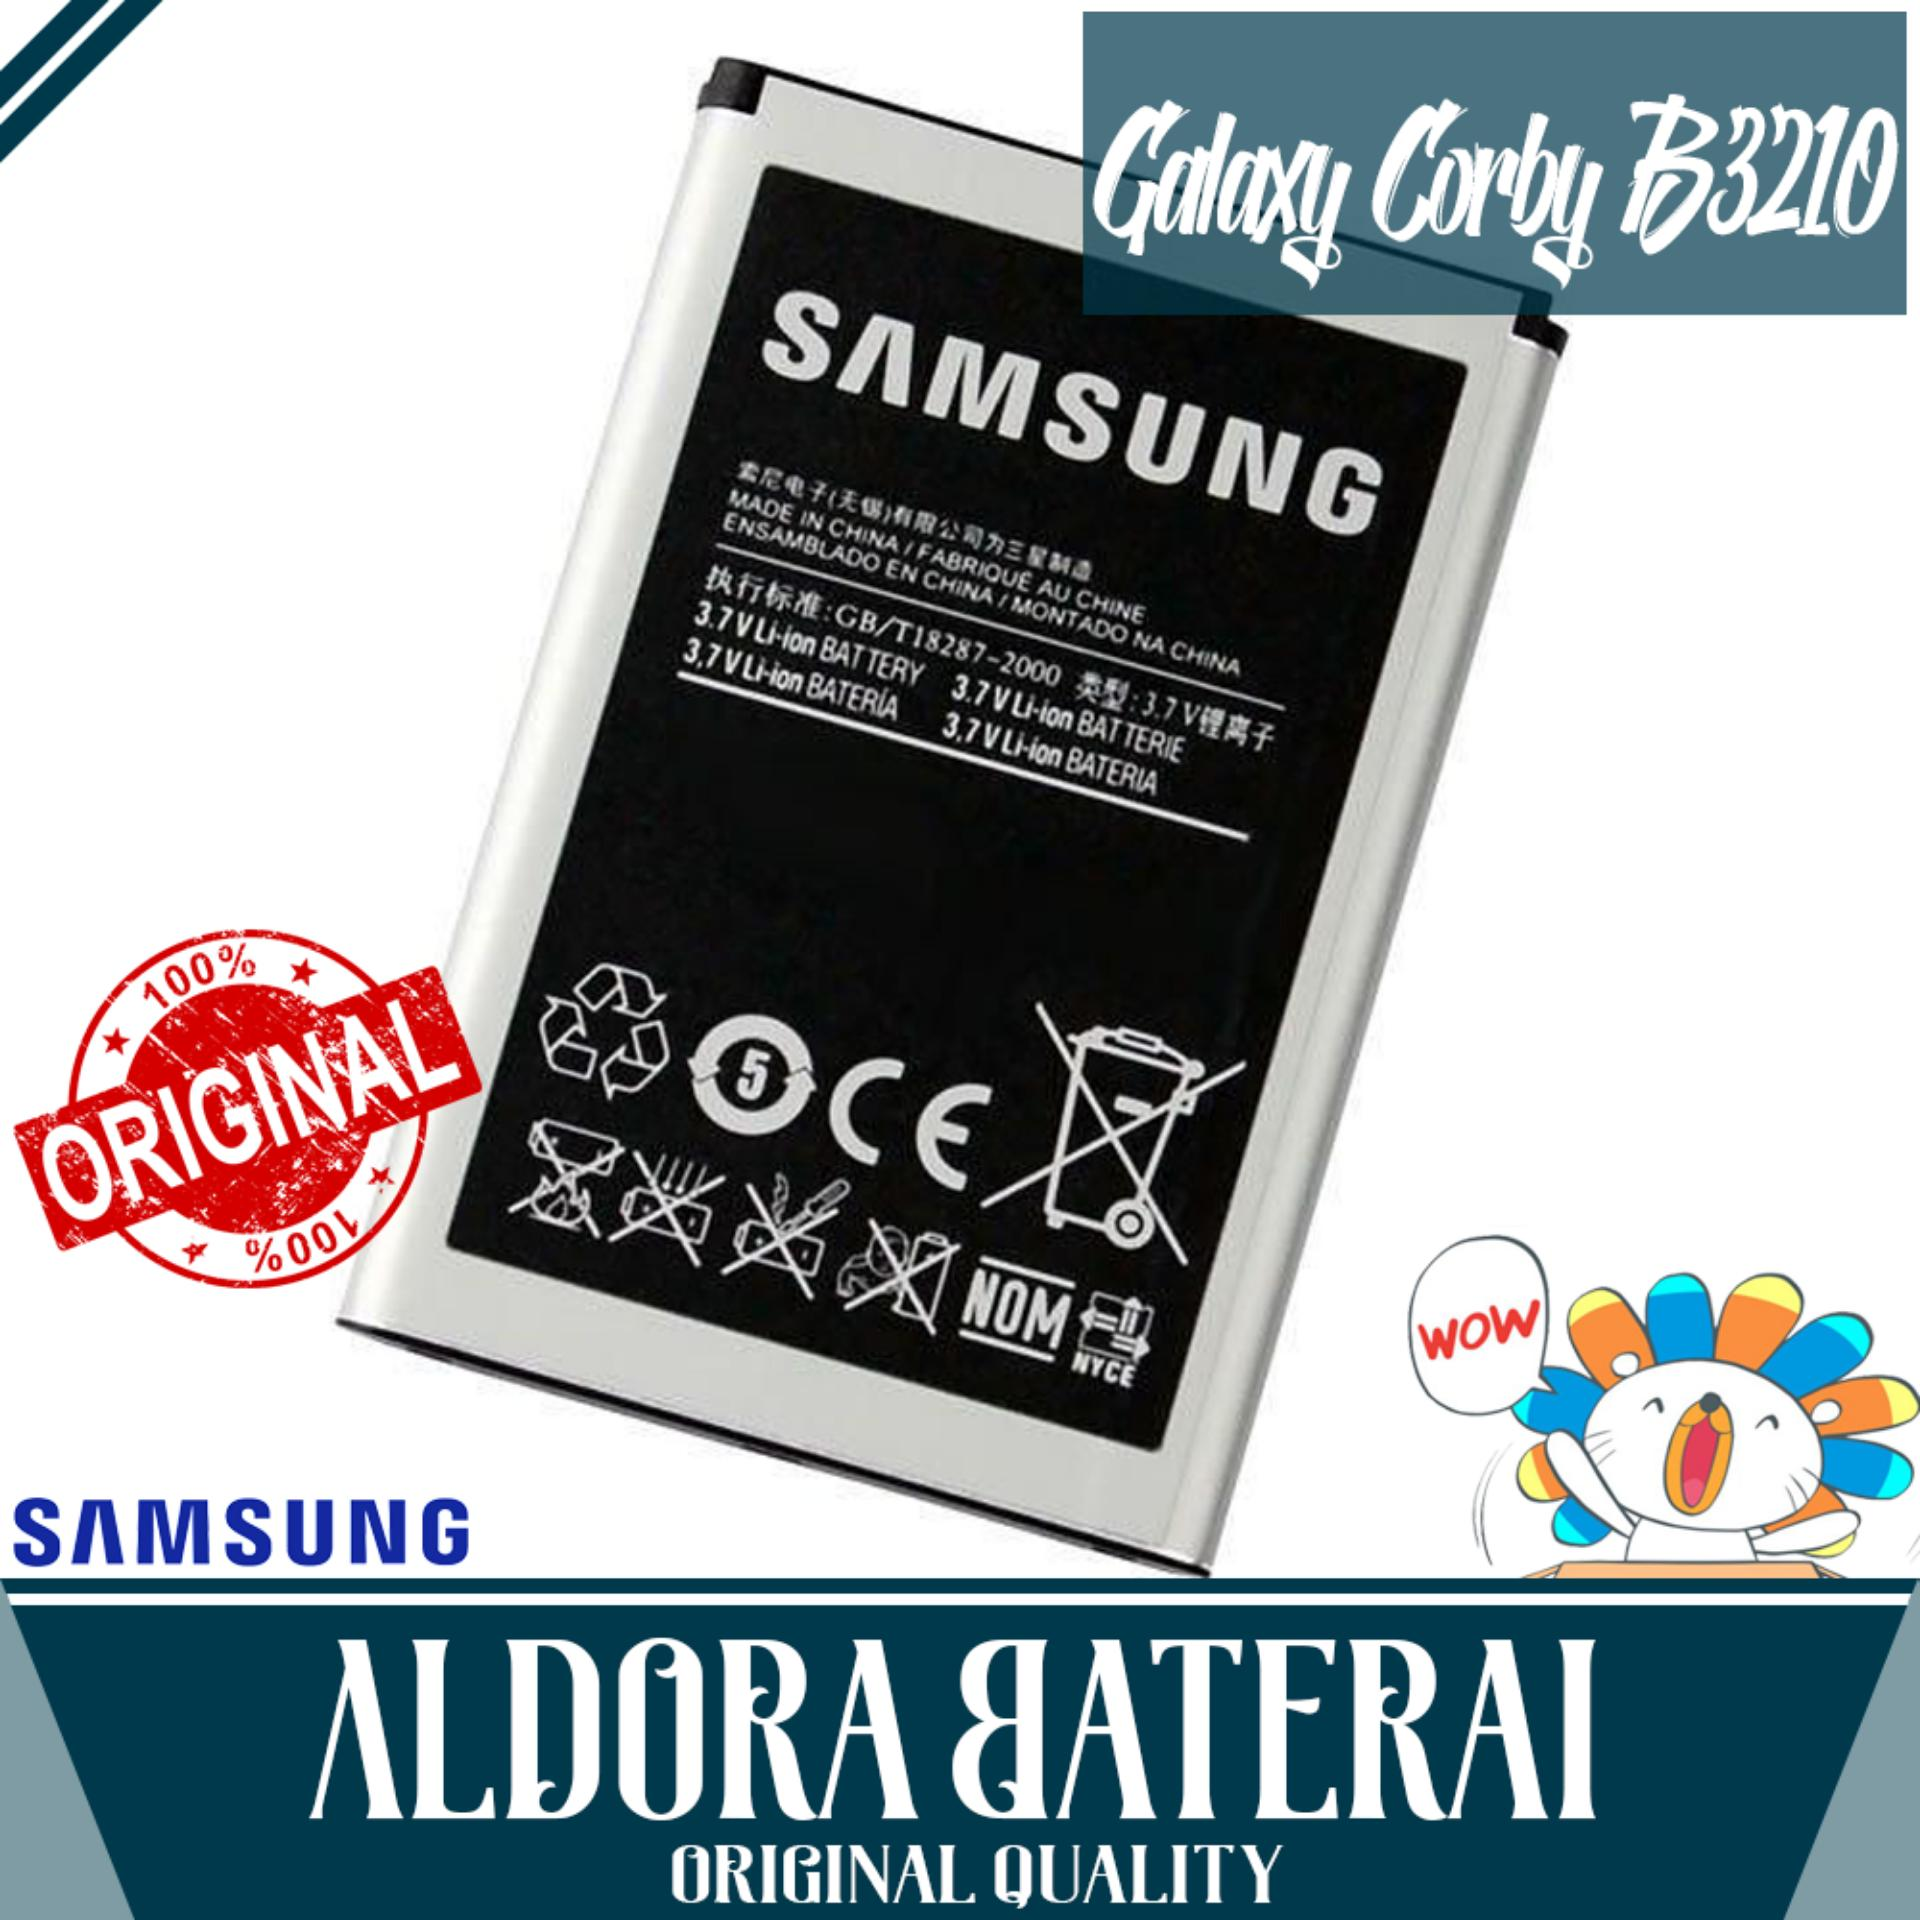 Aldora Baterai For Samsung Galaxy Corby txt B3210 / C3050 / M608 High Grade Battery SEIN Quality